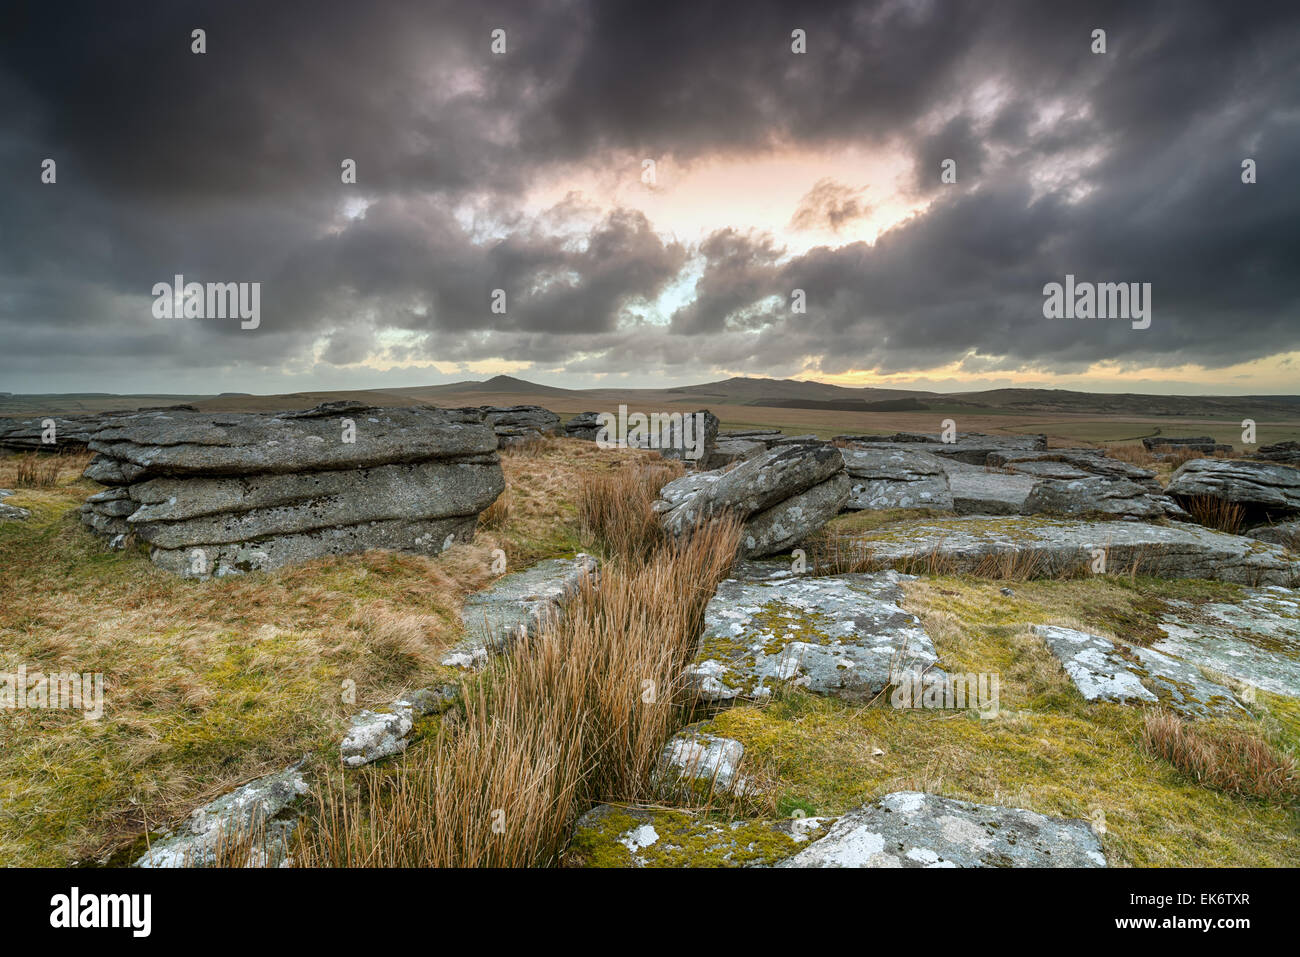 A dramatic stormy sky over Bodmin Moor in Cornwall, looking out toward the hills of Roughtor and Brown Willy - Stock Image